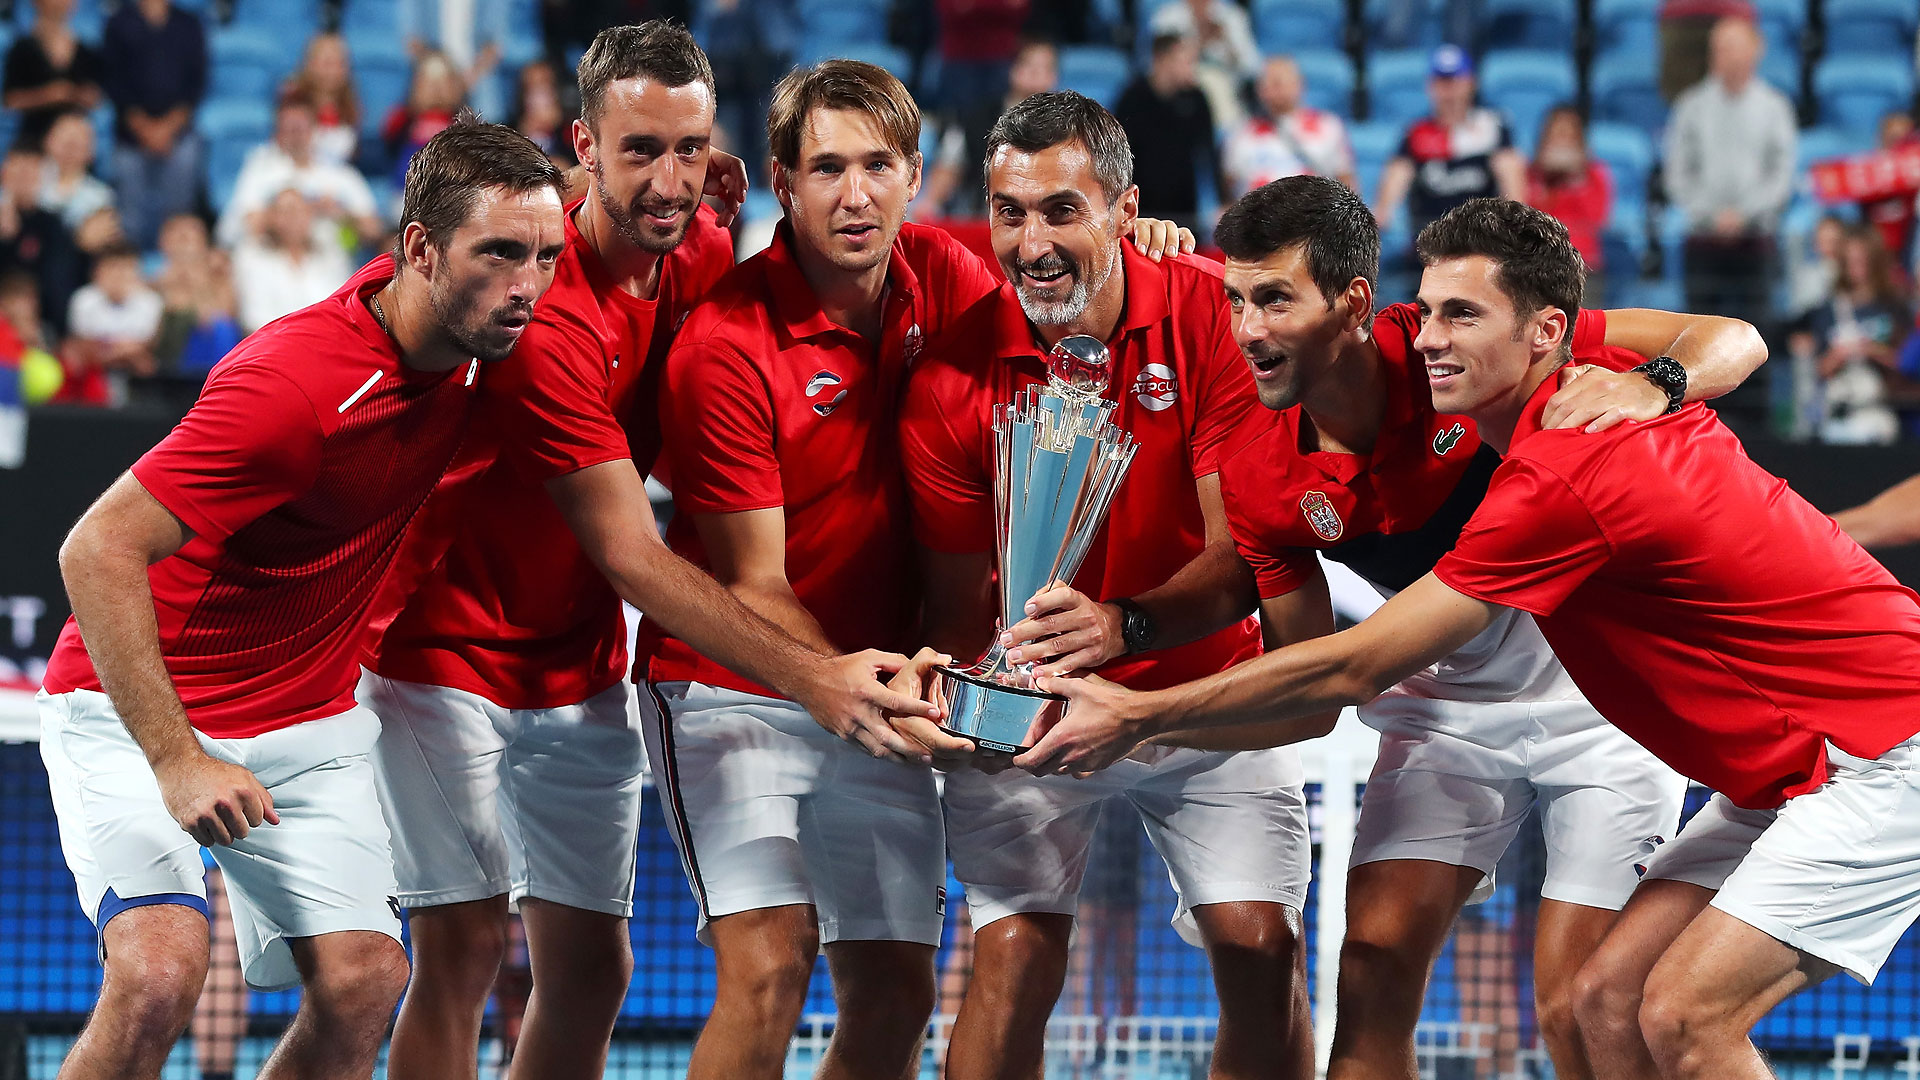 team-serbia-atp-cup-2020-by-the-numbers.